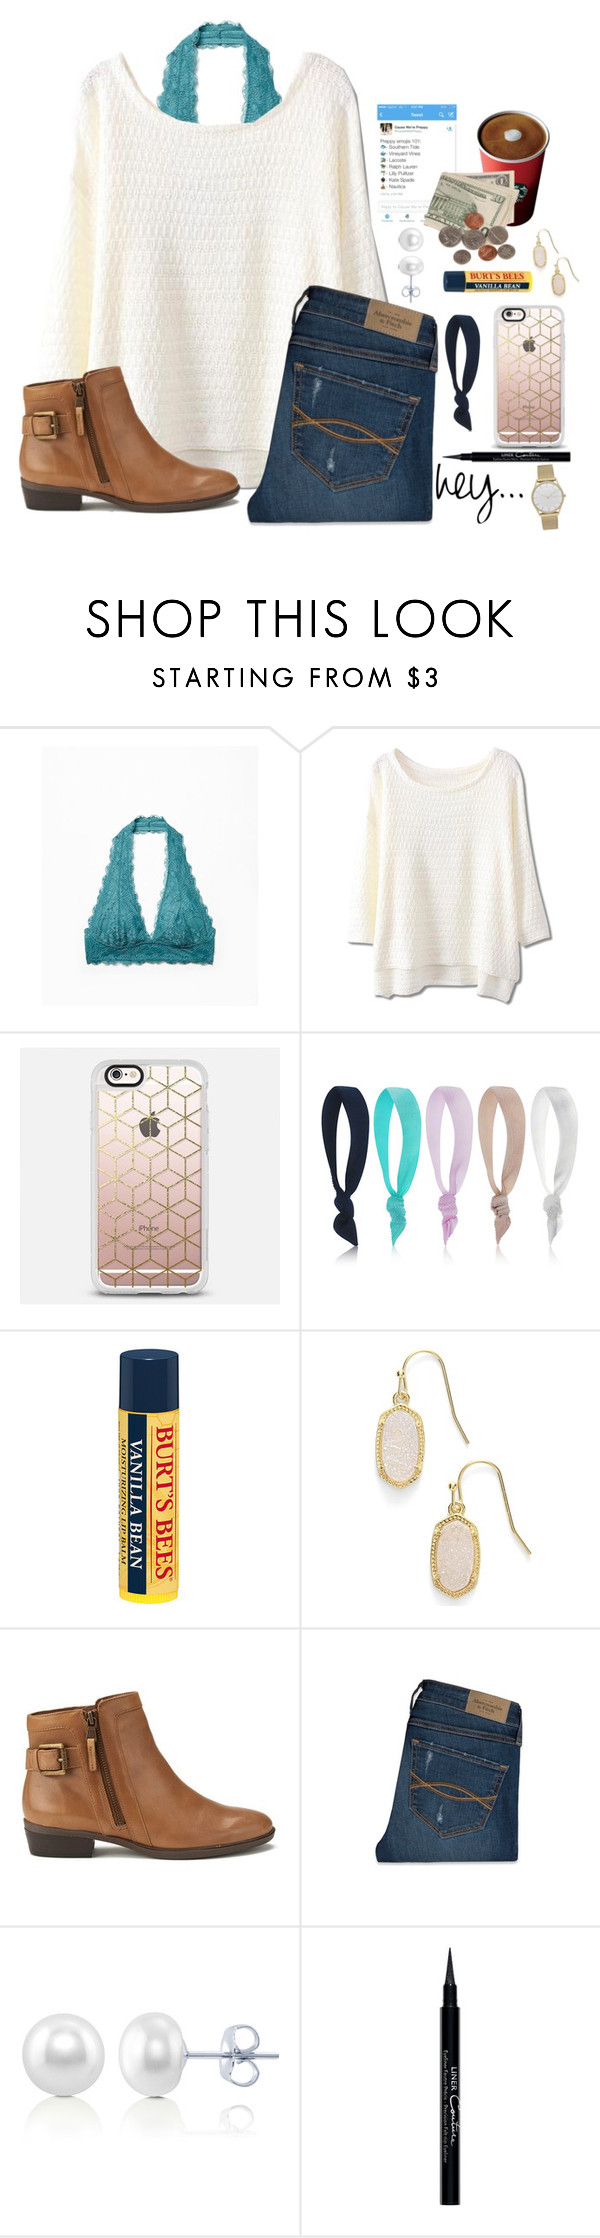 """""""Don't focus on everyone else's lives, you have your own to keep track of"""" by lydia-hh ❤ liked on Polyvore featuring Free People, Dye Ties, Burt's Bees, Kendra Scott, Lauren Ralph Lauren, Abercrombie & Fitch, BERRICLE, Givenchy and Skagen"""